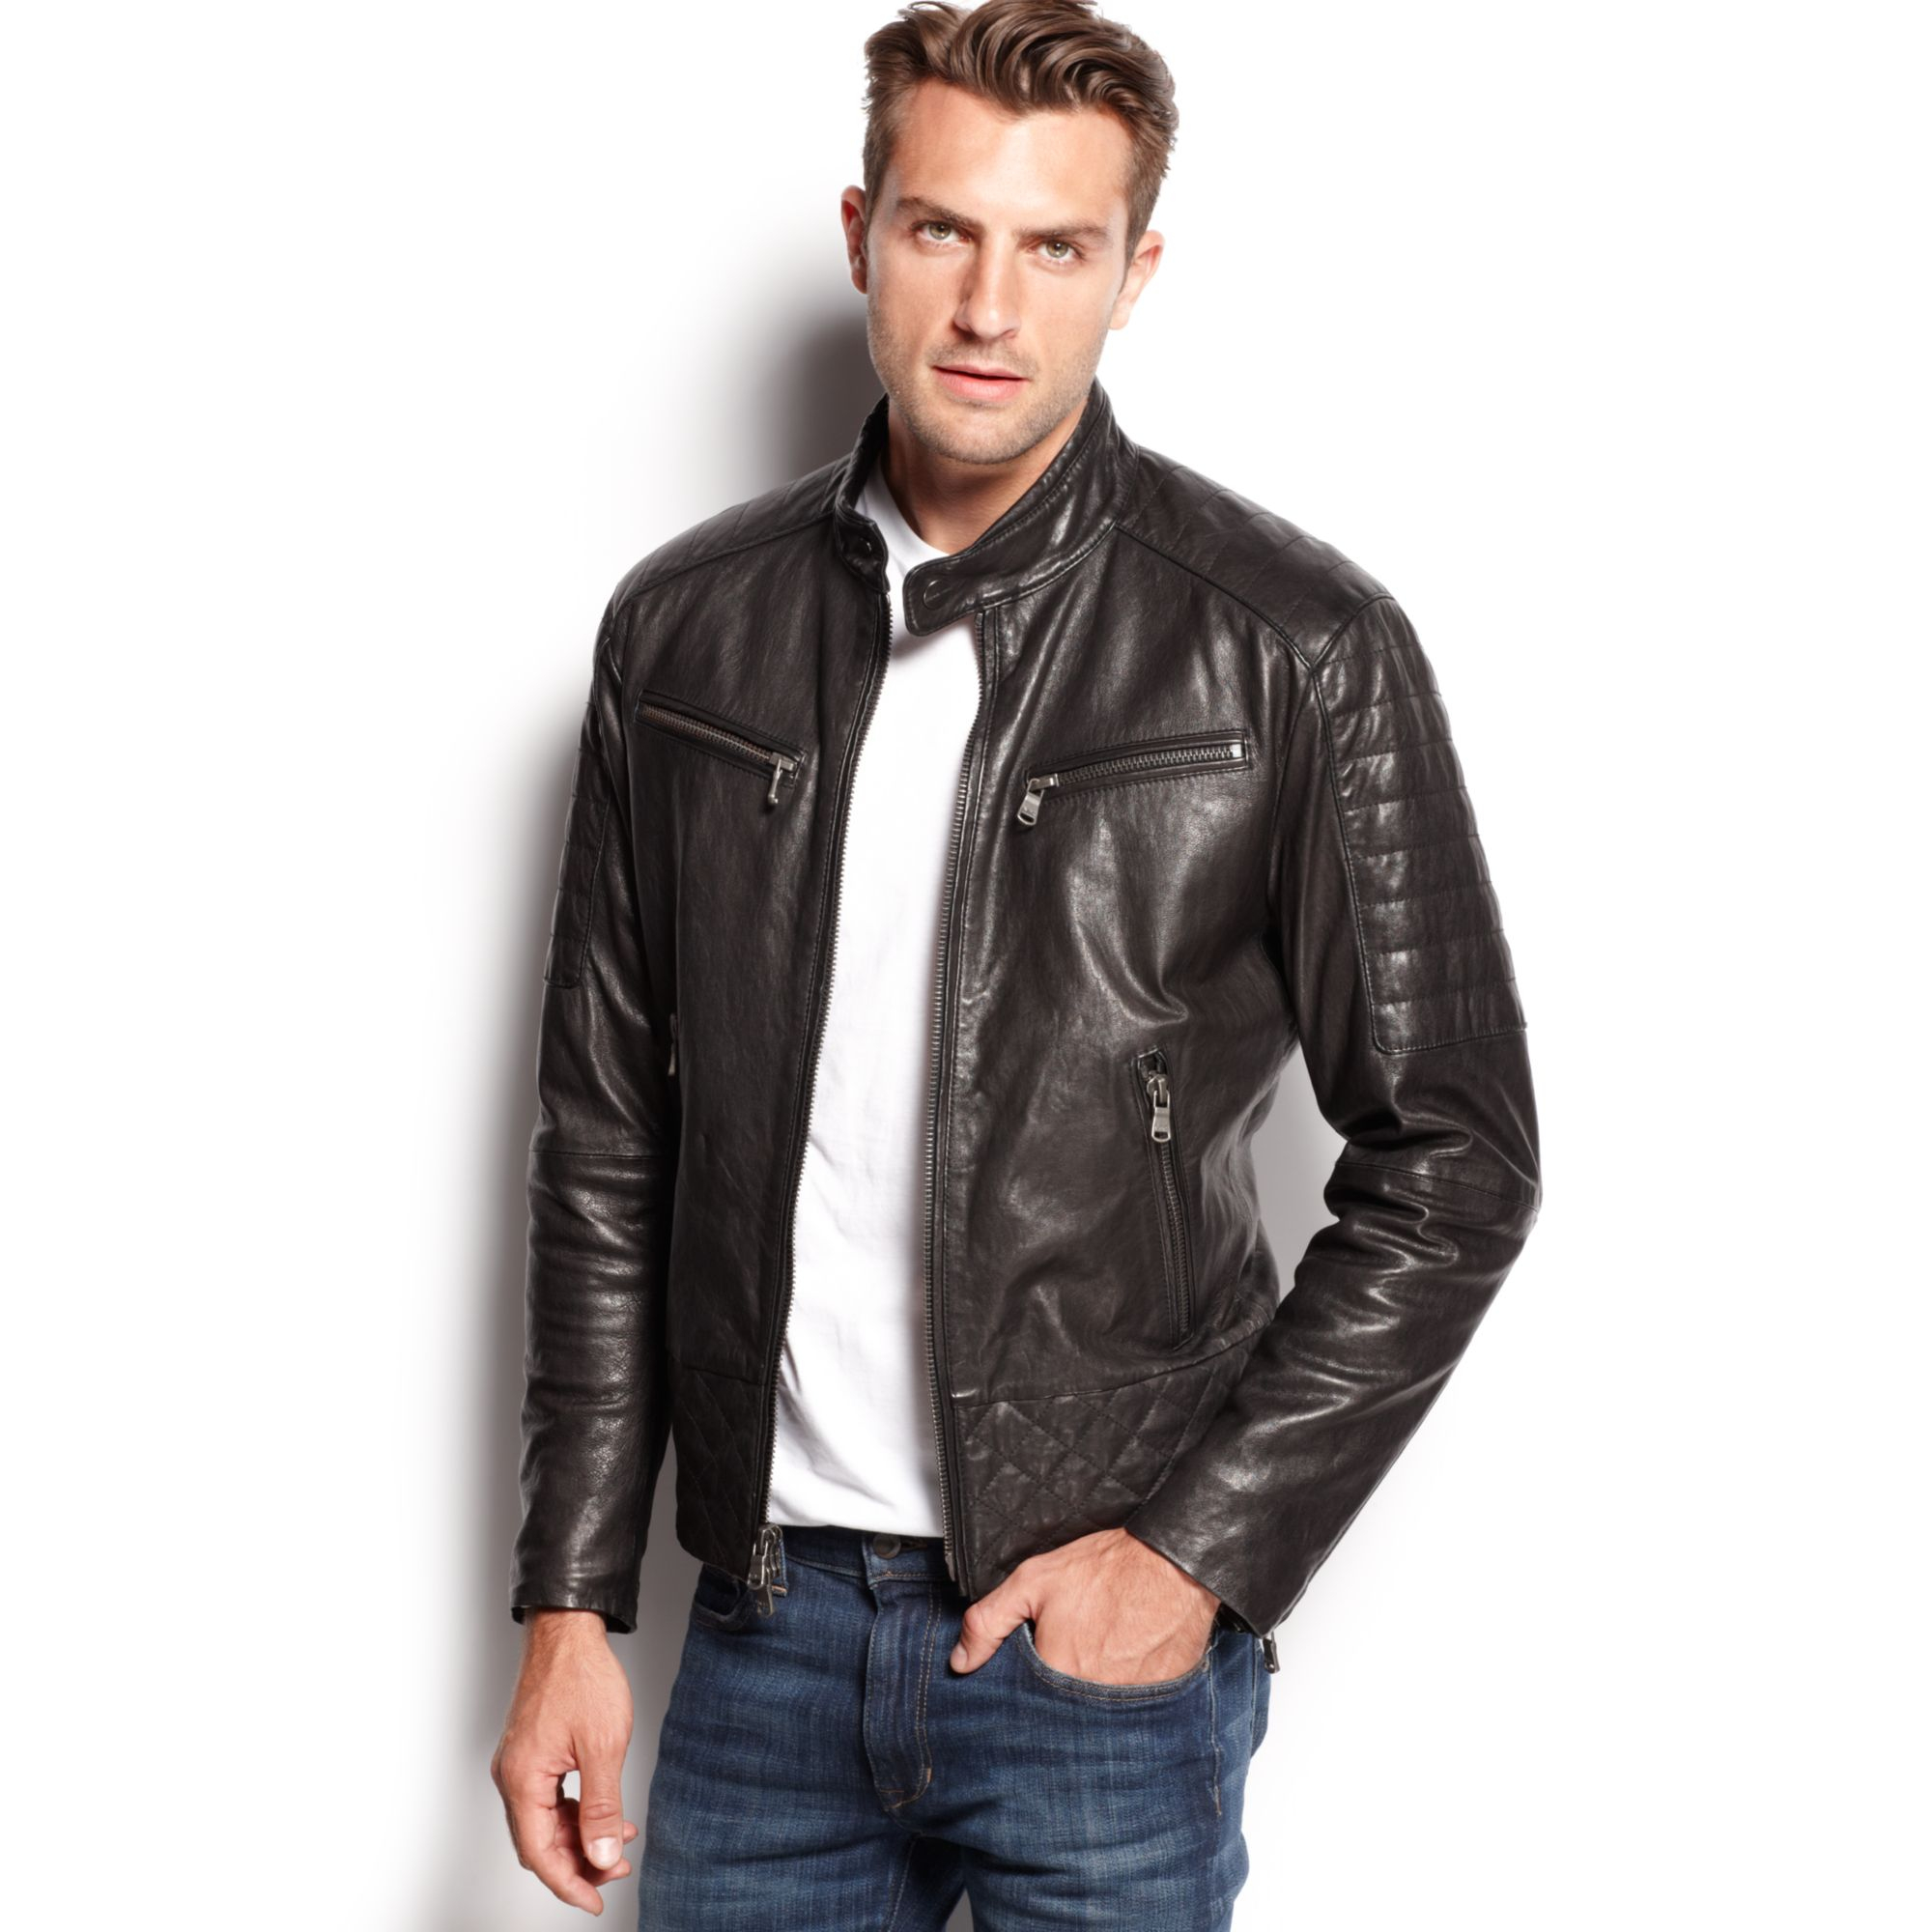 Leather jacket cleaning products